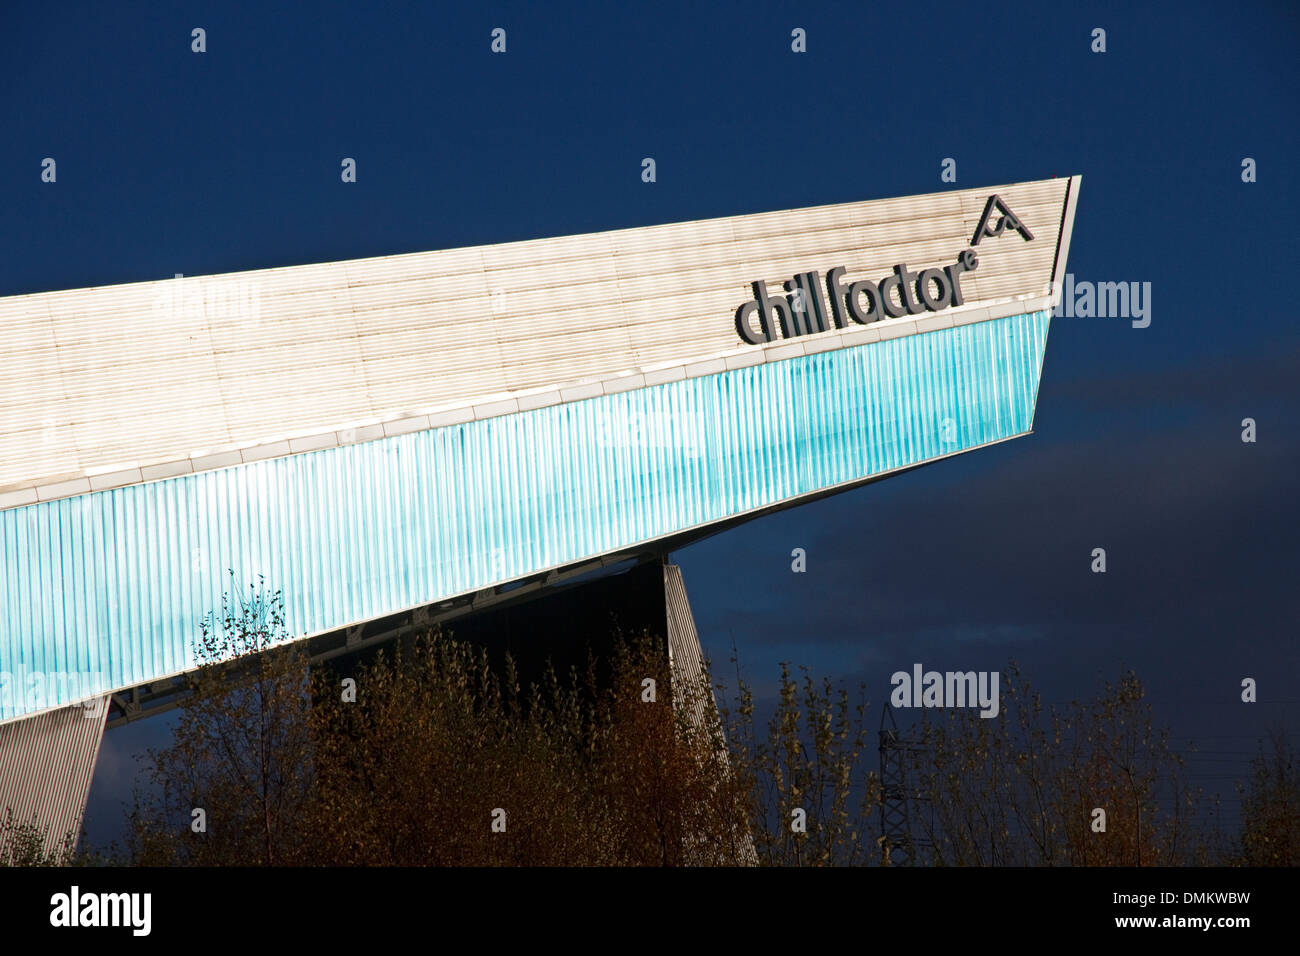 The Chill Factor ( Factore). Indoor skiing, snowboarding and snow activities centre. Trafford, Manchester, England, UK - Stock Image